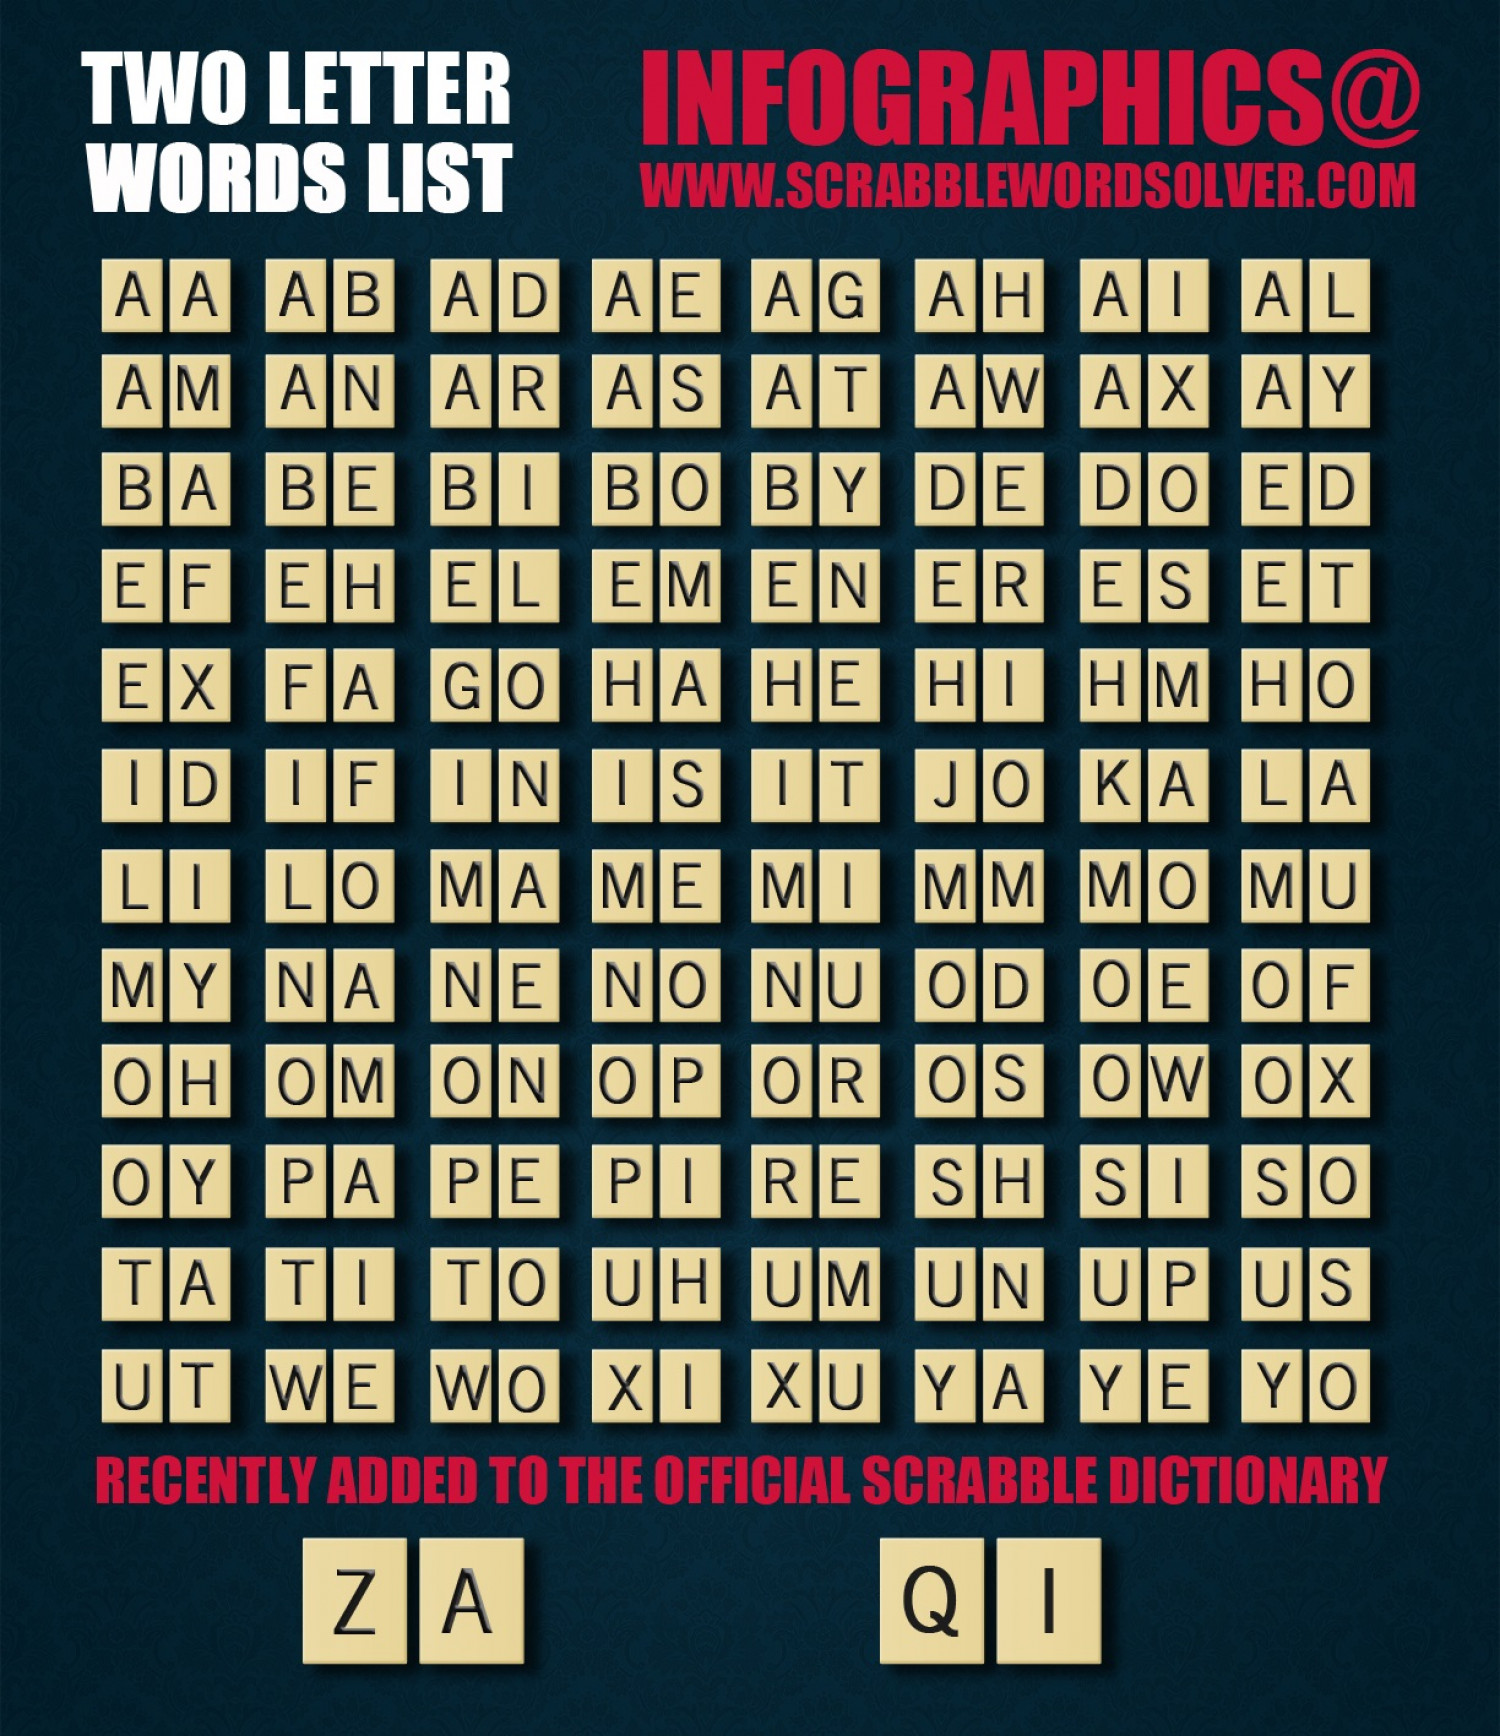 q letter words with friends official 2 two letter word list for scrabble visual ly 23402 | official 2 two letter word list for scrabble 531348979415e w1500